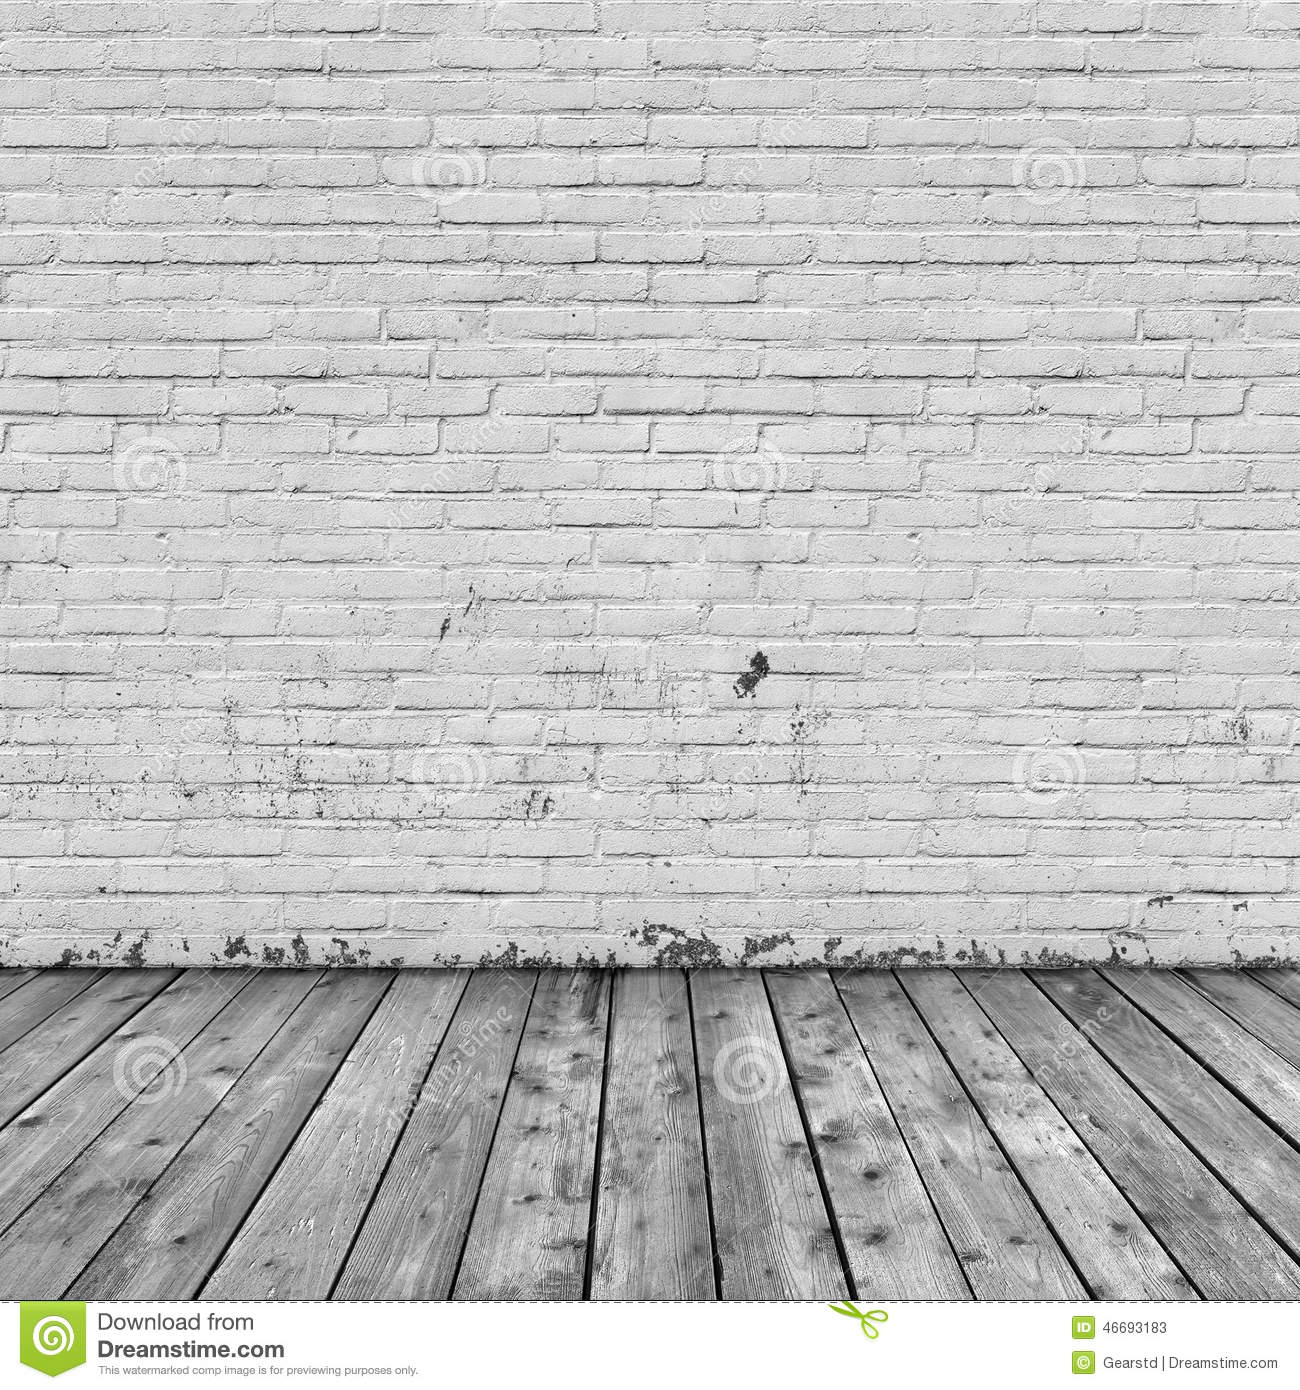 Background Interior: Brick Wall And Wood Floor Stock Photo - Image ...